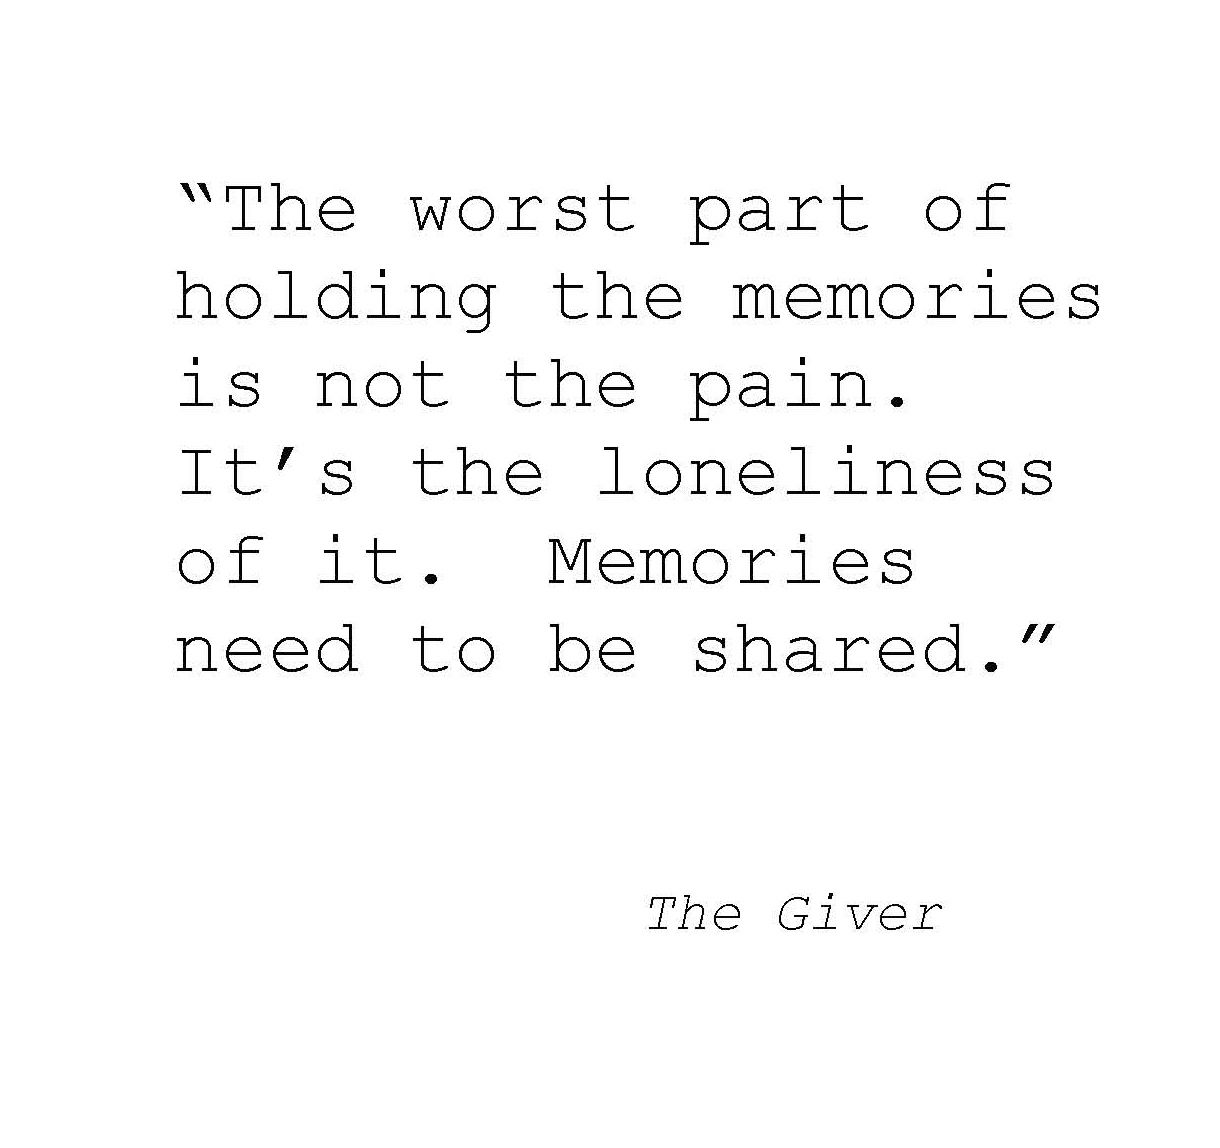 The Giver Book Quotes Endearing The Best Quote In The Giver Good Read For A Dystopian Novel